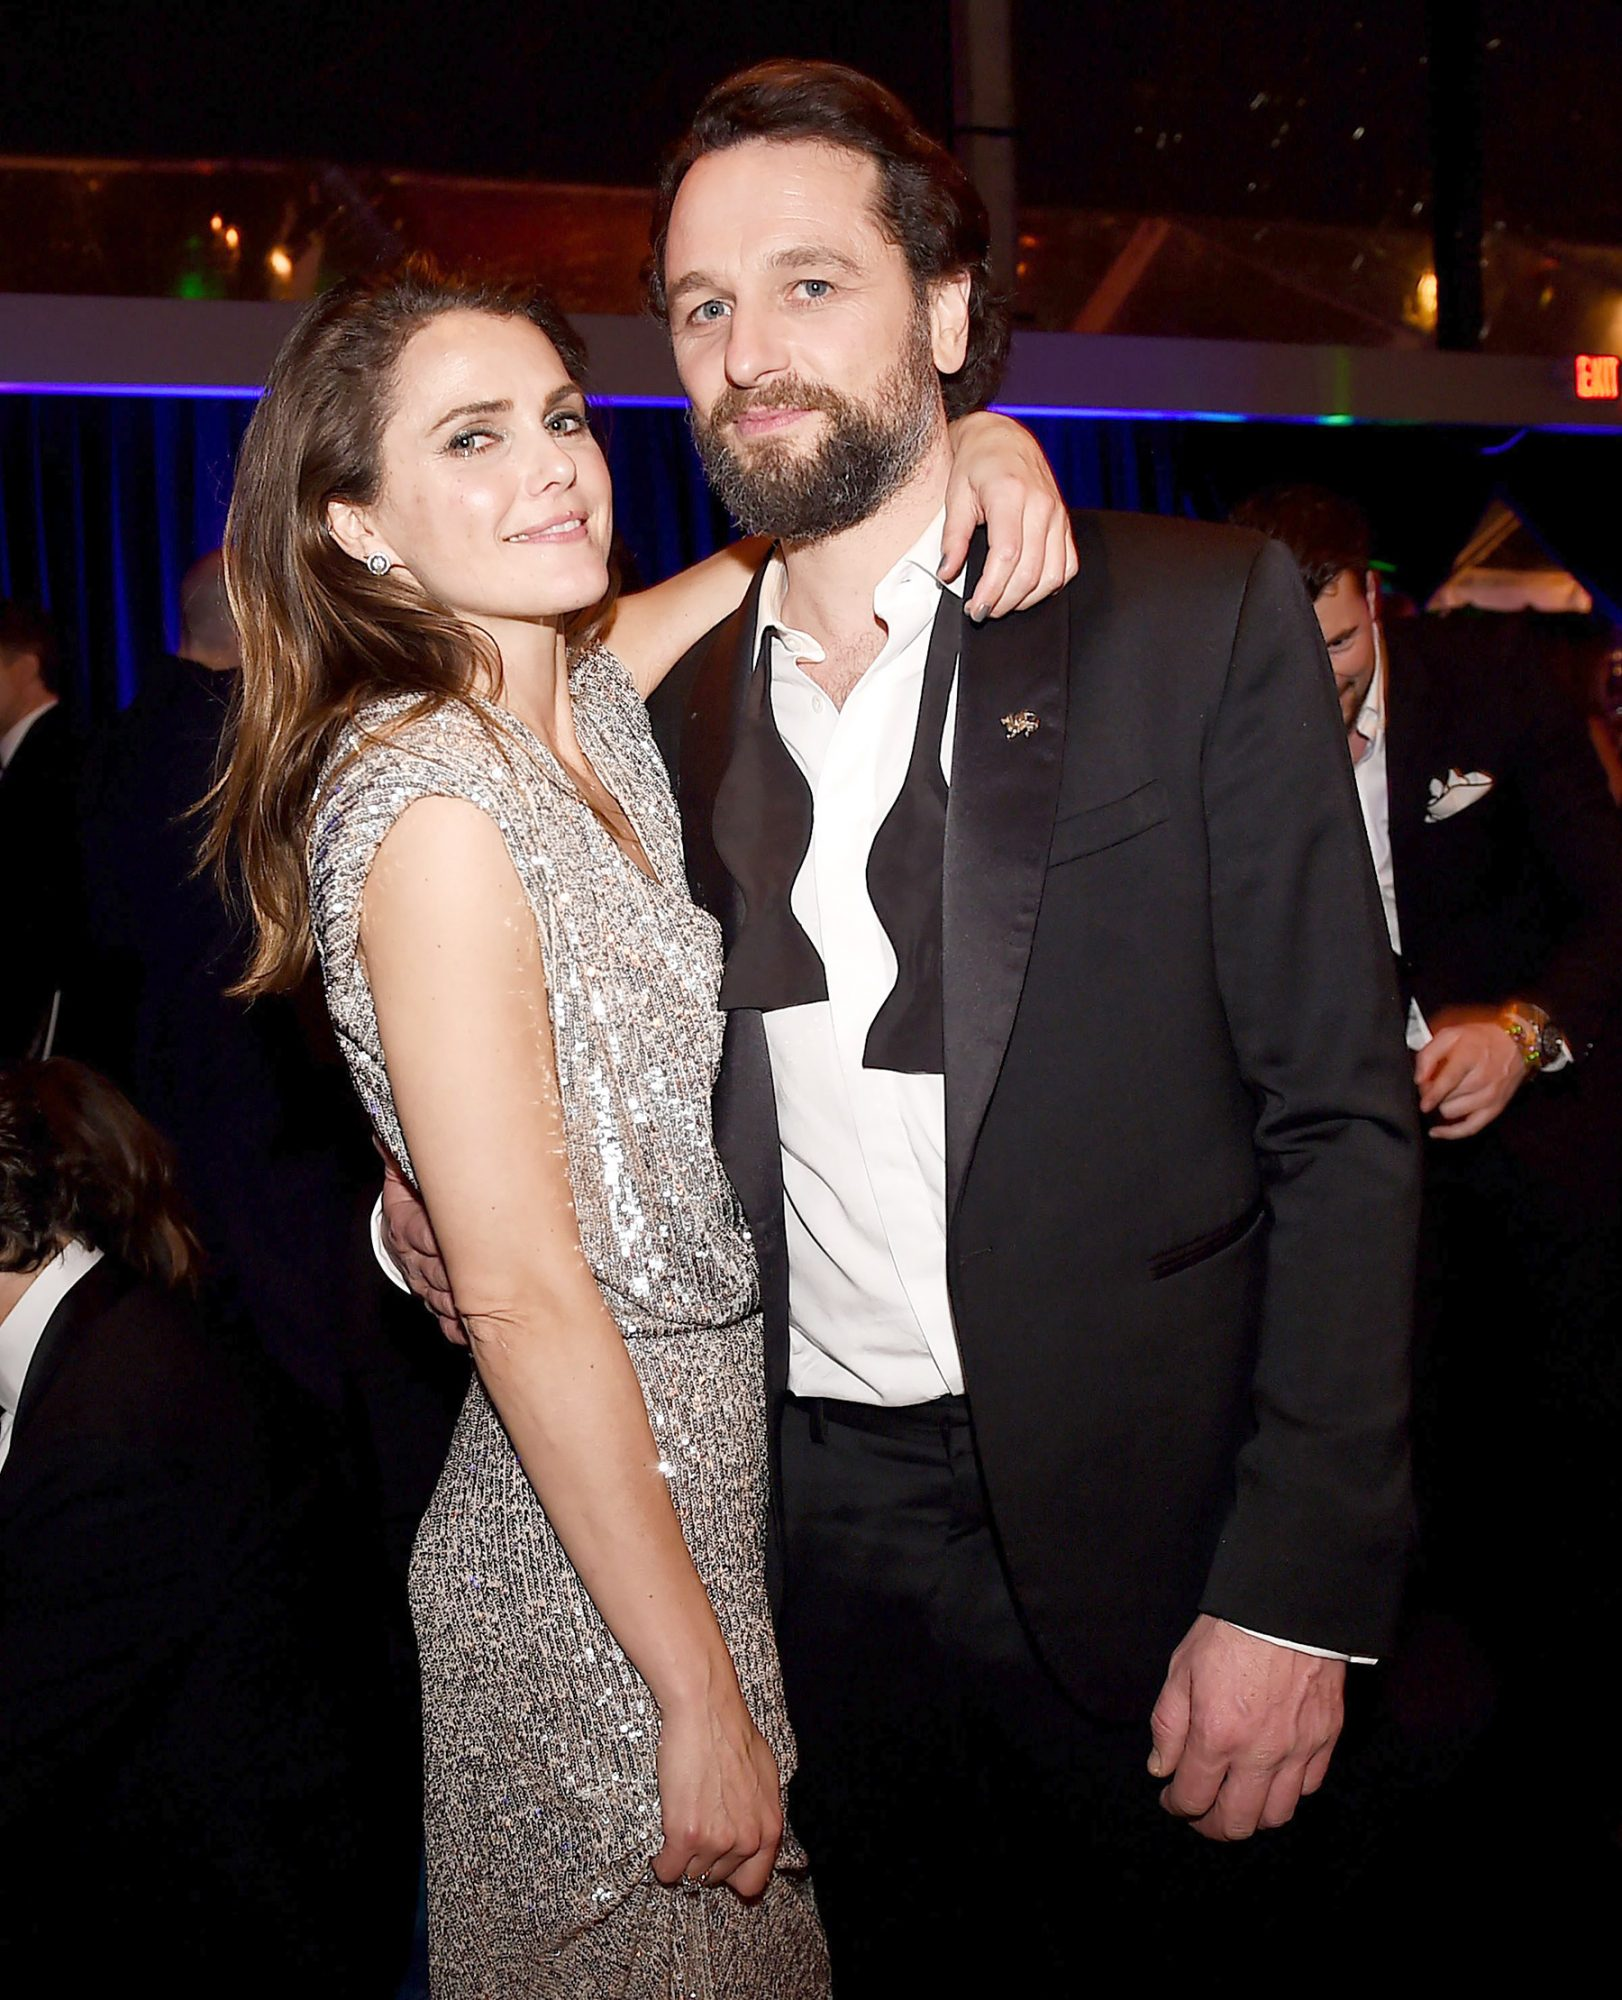 FOX Golden Globes After Party, Inside, Los Angeles, USA - 06 Jan 2019